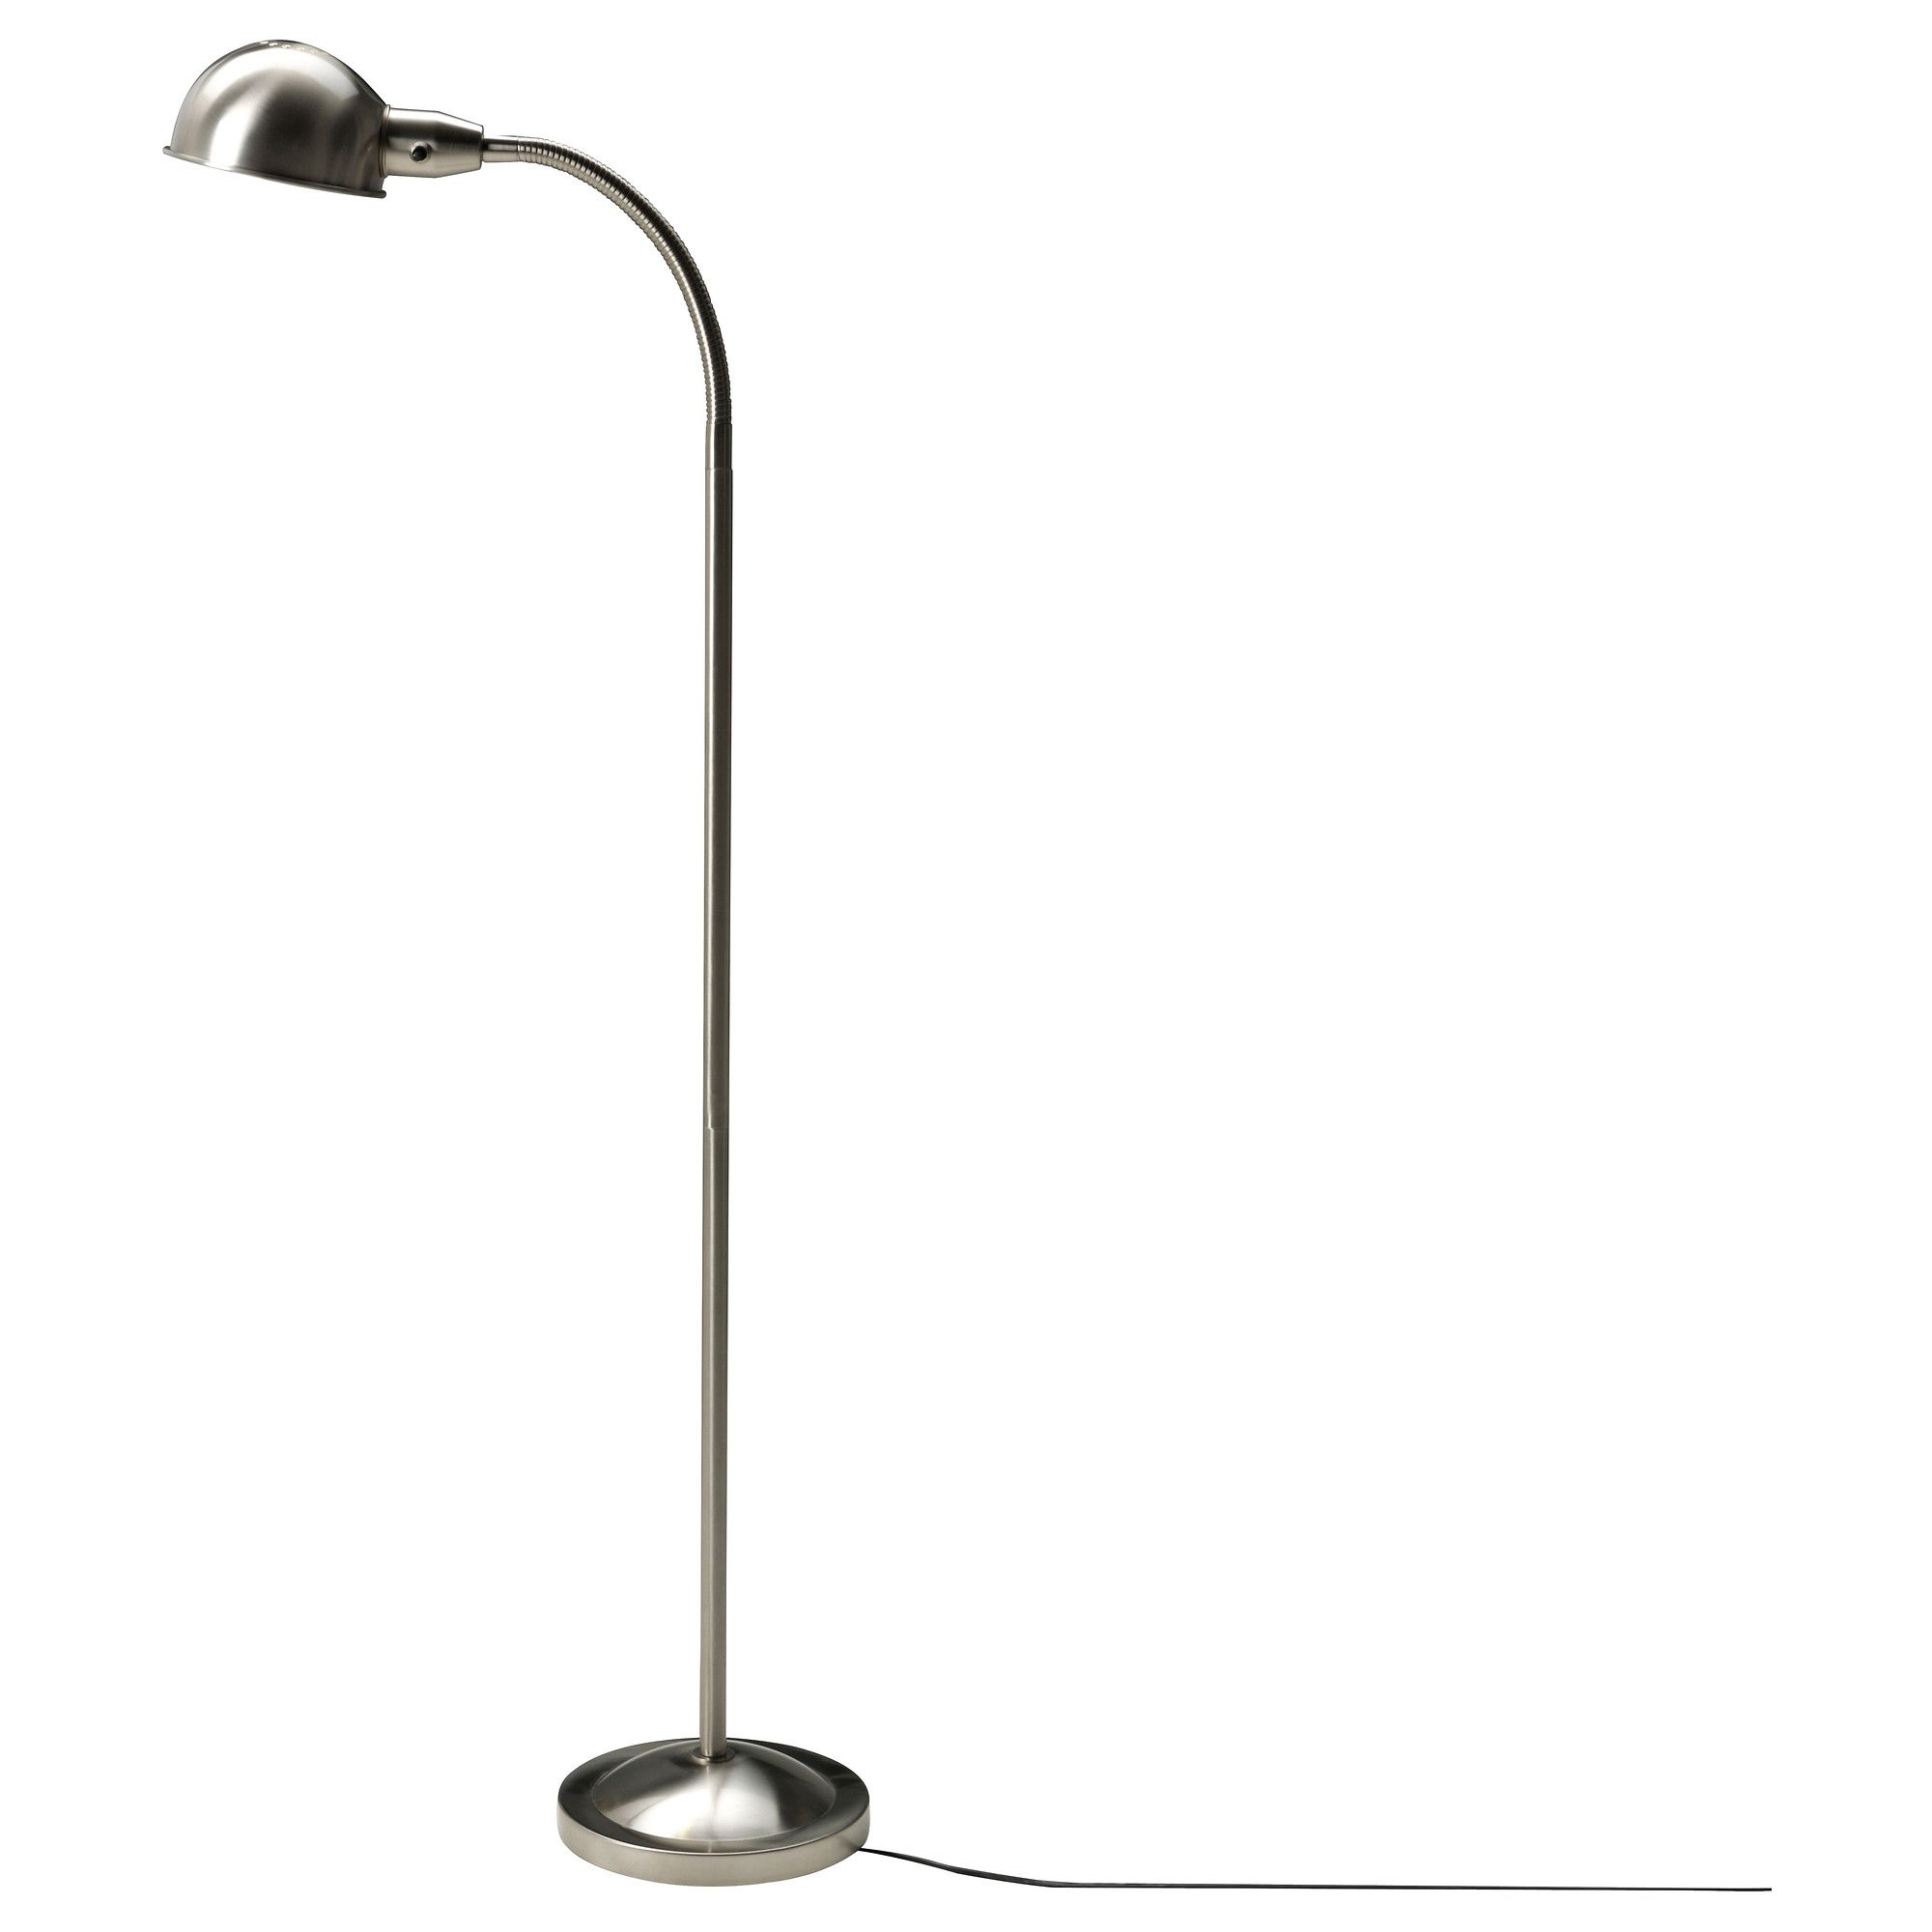 Ikea Reading Lamp Furniture And Home Furnishings Living Room Ikea Floor Lamp